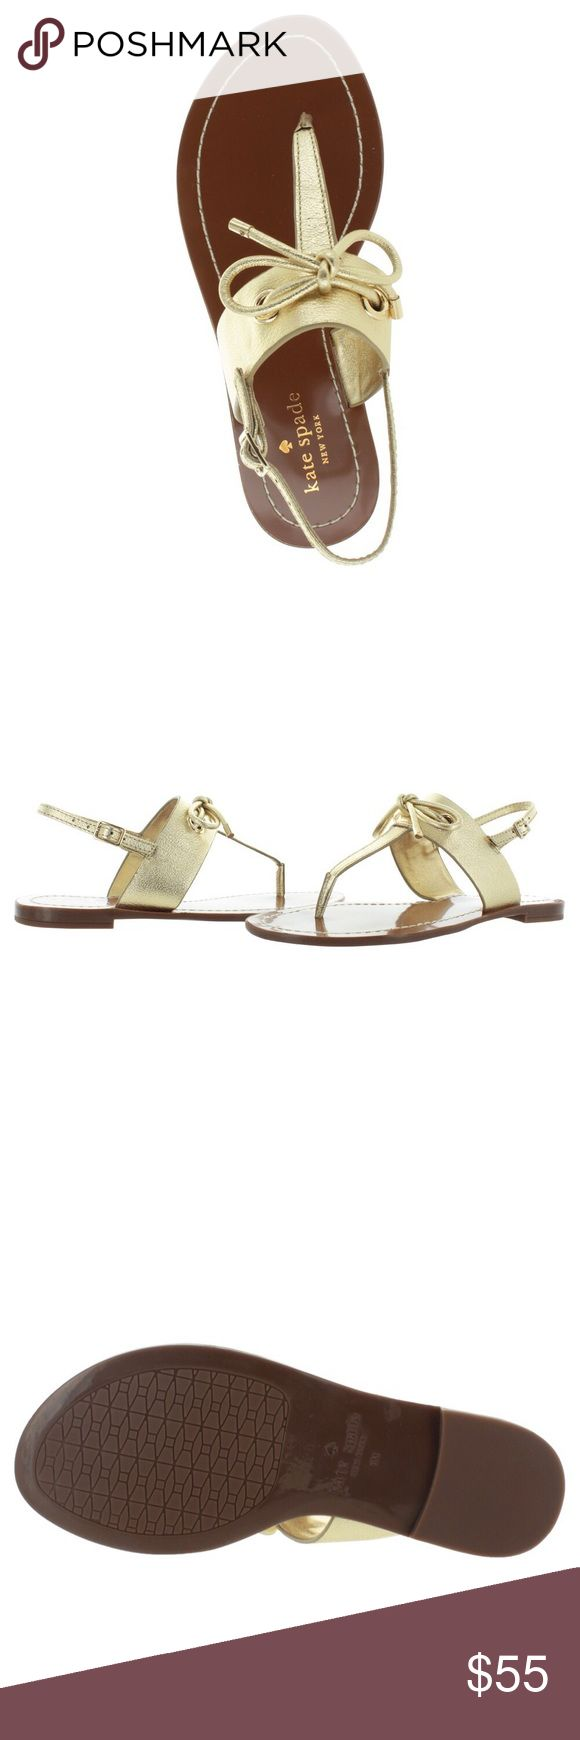 New Kate Spade Gold Carolina Leather Sandals Kate Spade Gold Genuine Leather Carolina T Strap Sandals •New without box •Size 6.5 •Retails for $128  Check out my other listings- Nike, adidas, Michael Kors, Kate Spade, Miss Me, Coach, Wildfox, Victoria's Secret, PINK, Under Armour, True Religion, Ugg Australia, Free People and more! kate spade Shoes Sandals